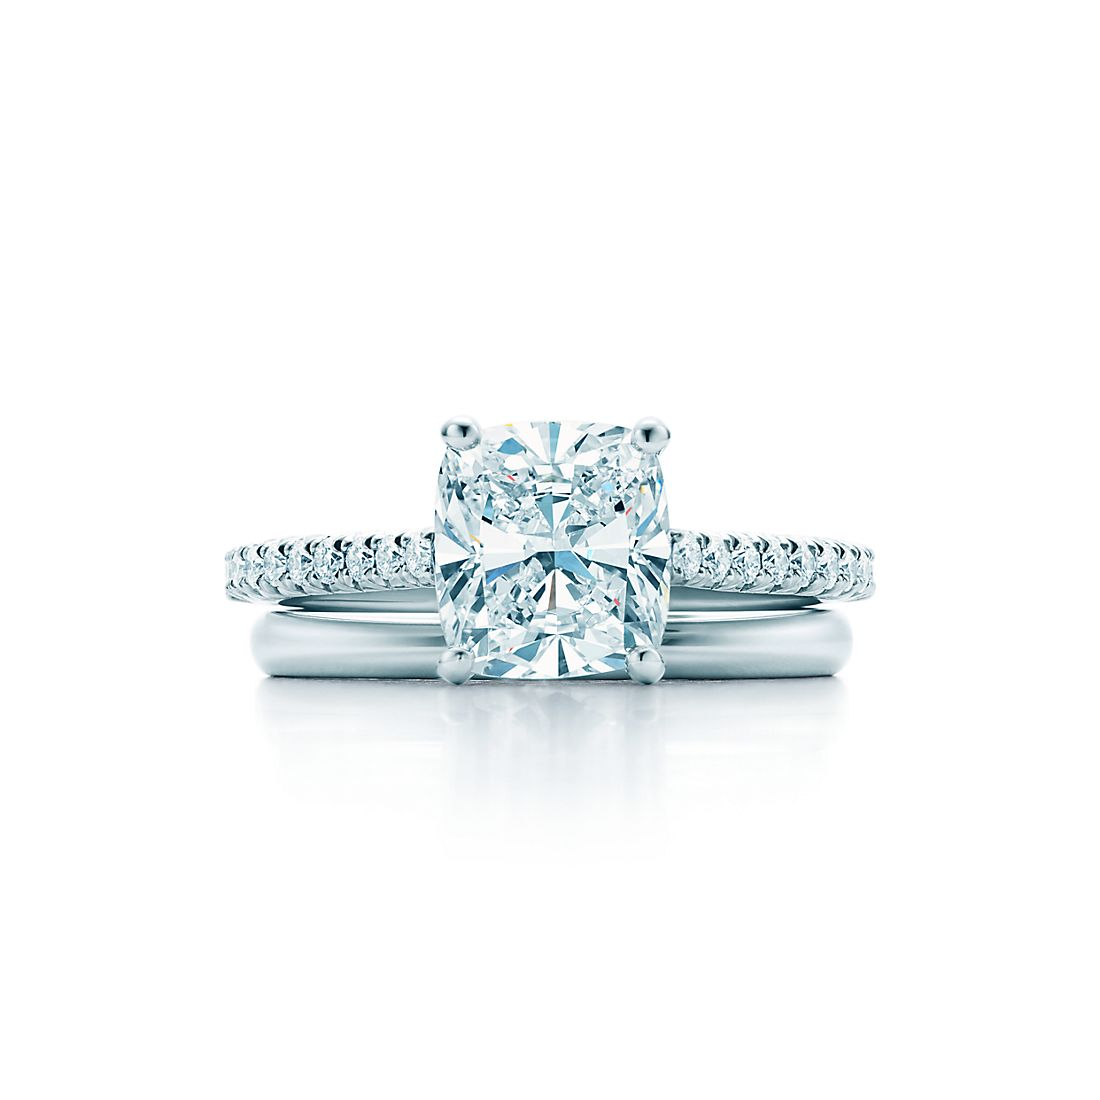 Tiffany Diamond Rings Resale Value